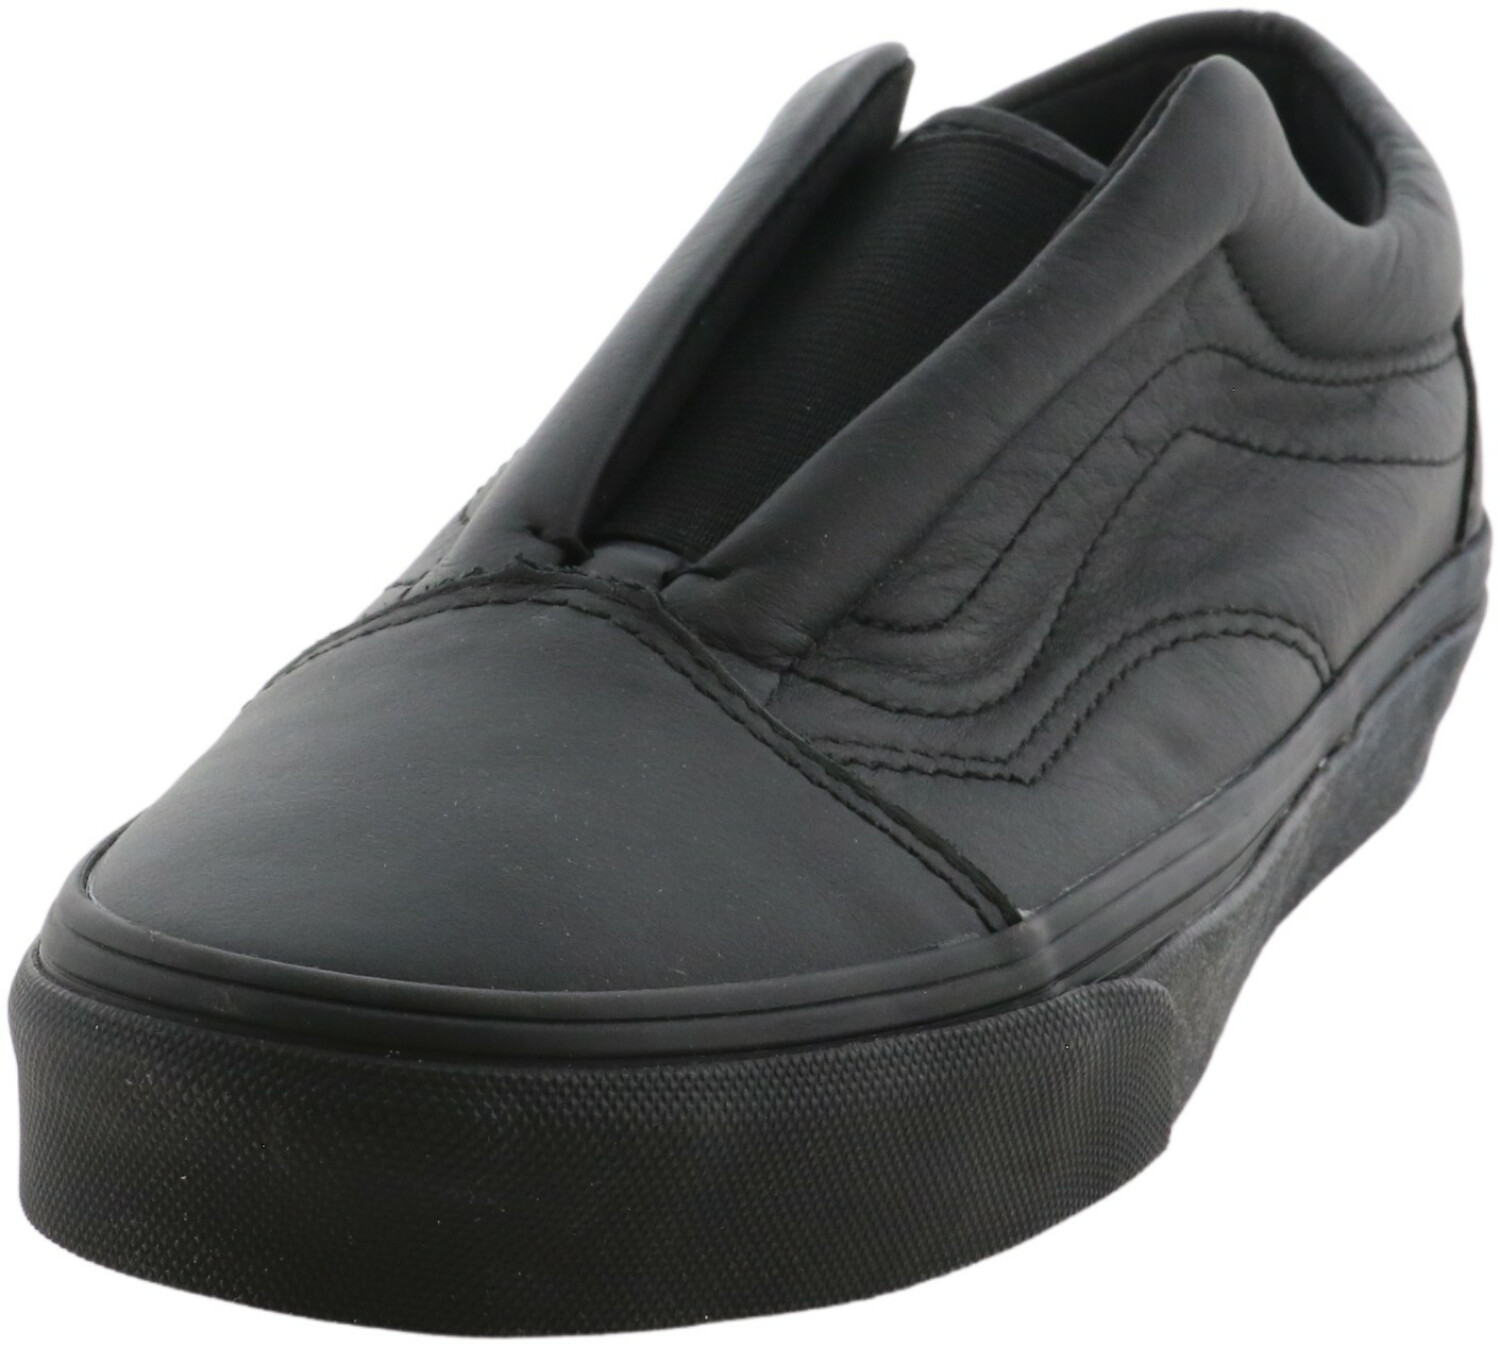 Vans Old Skool Laceless Leather Black Low Top Slip-On Shoes - 5M / 3.5M